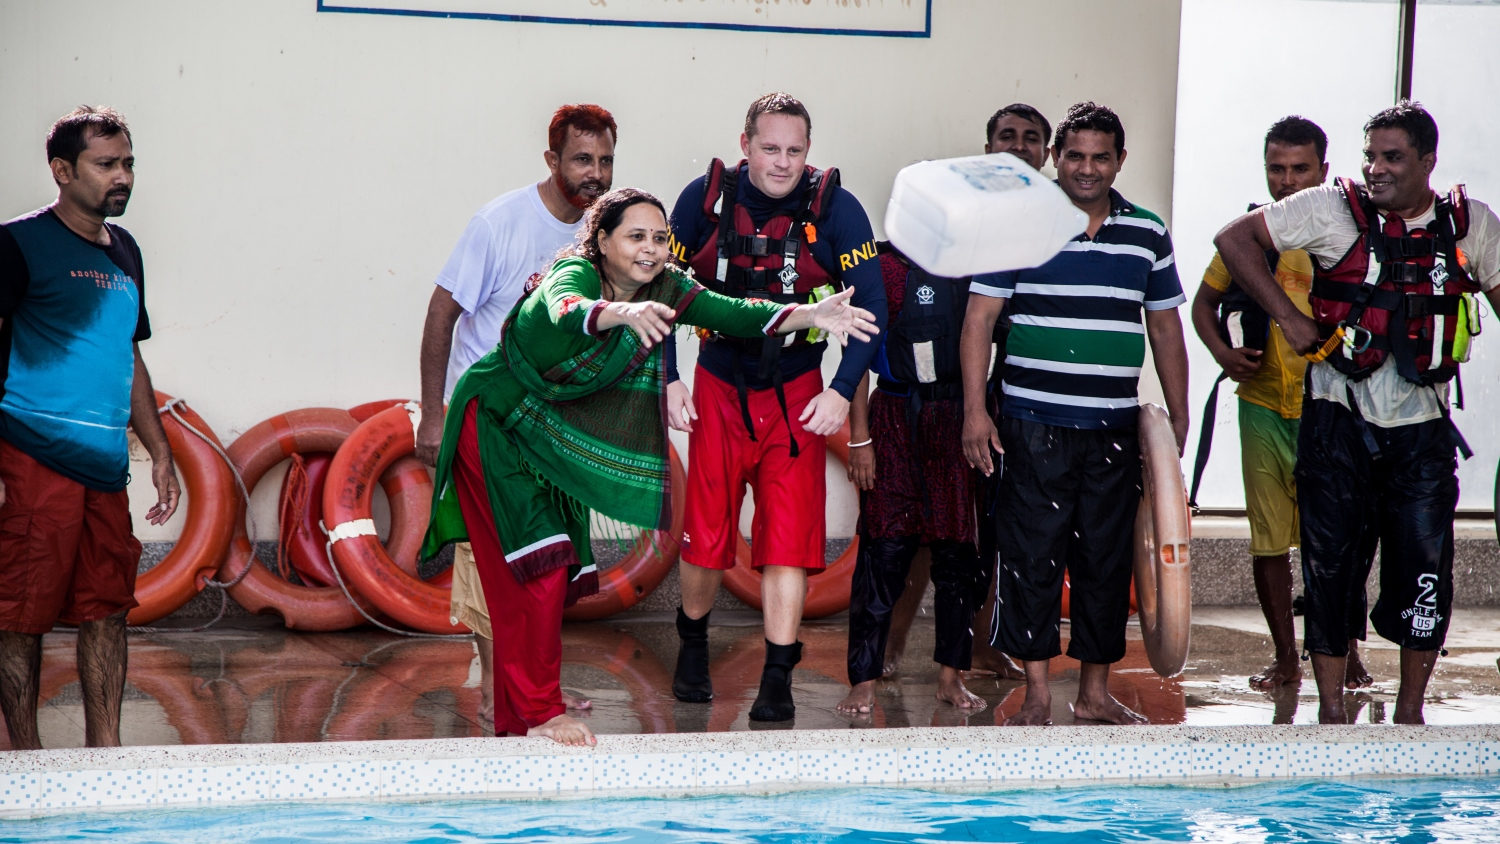 Flood rescue trainees in a swimming pool in Bangladesh